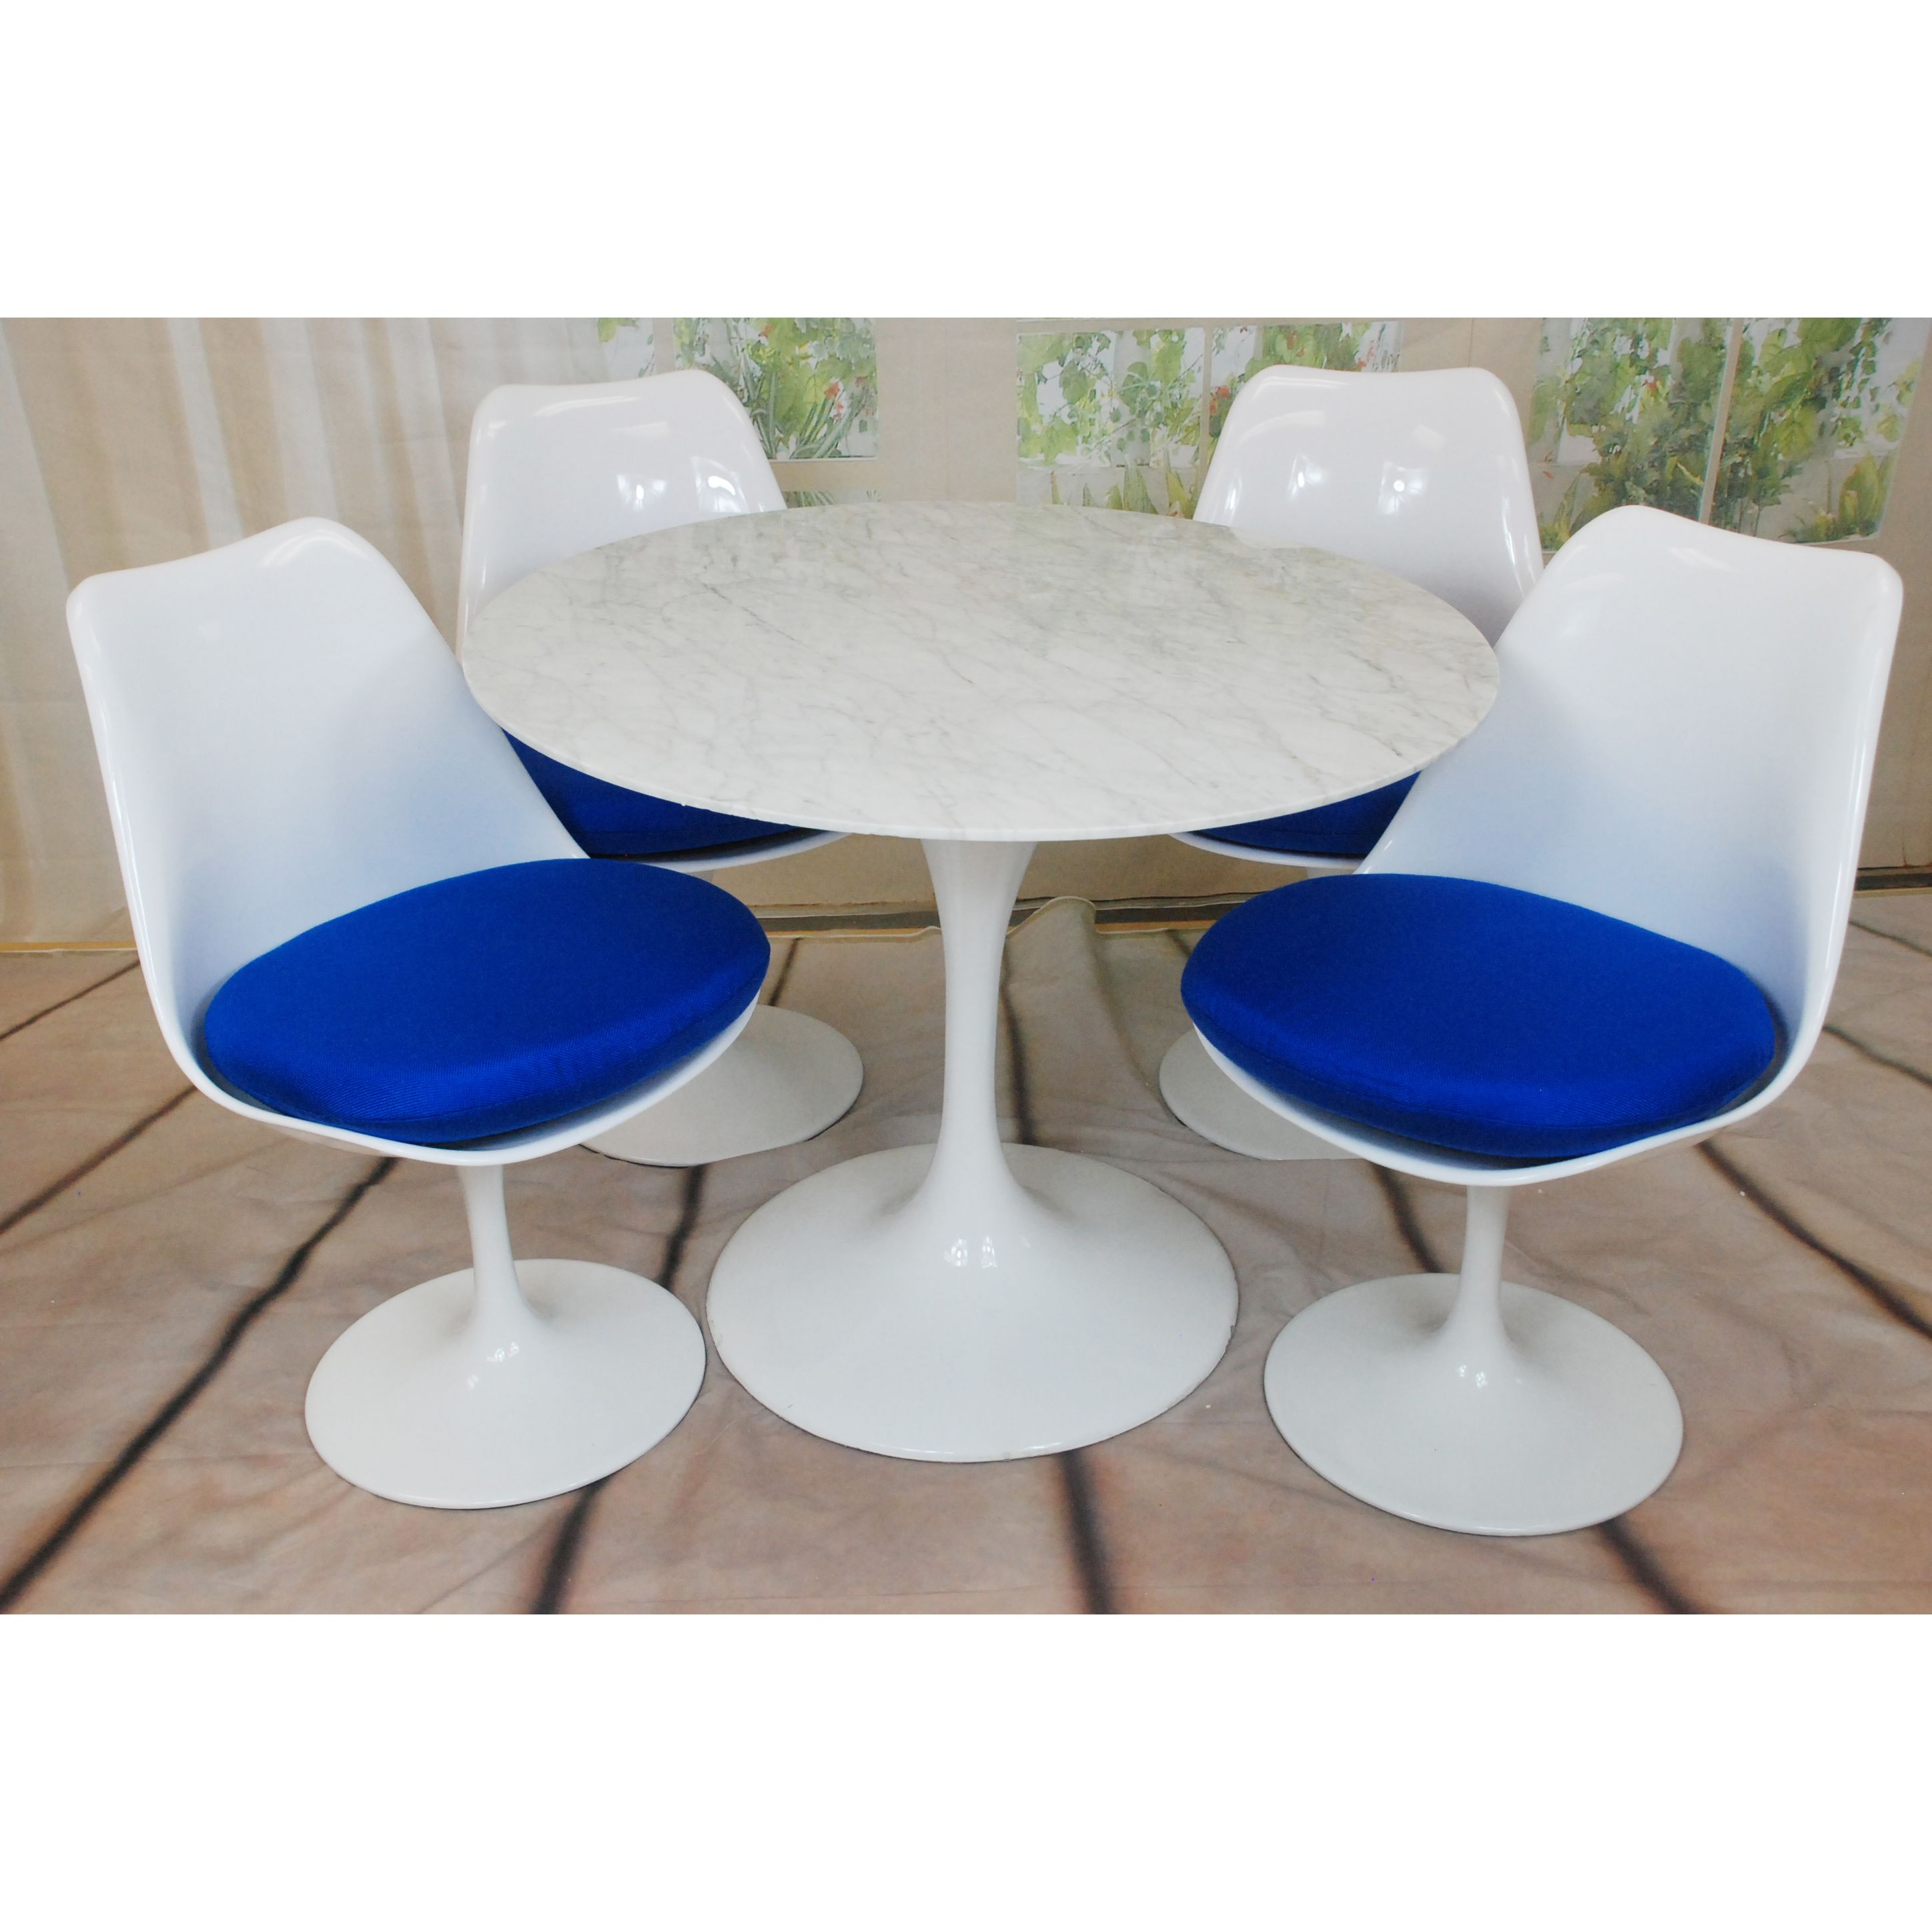 Mod Made Lily Natural Marble 5-piece Dining Set ((1) Marble Table and (4) Blue Cushion Chairs), Size 5-Piece Sets